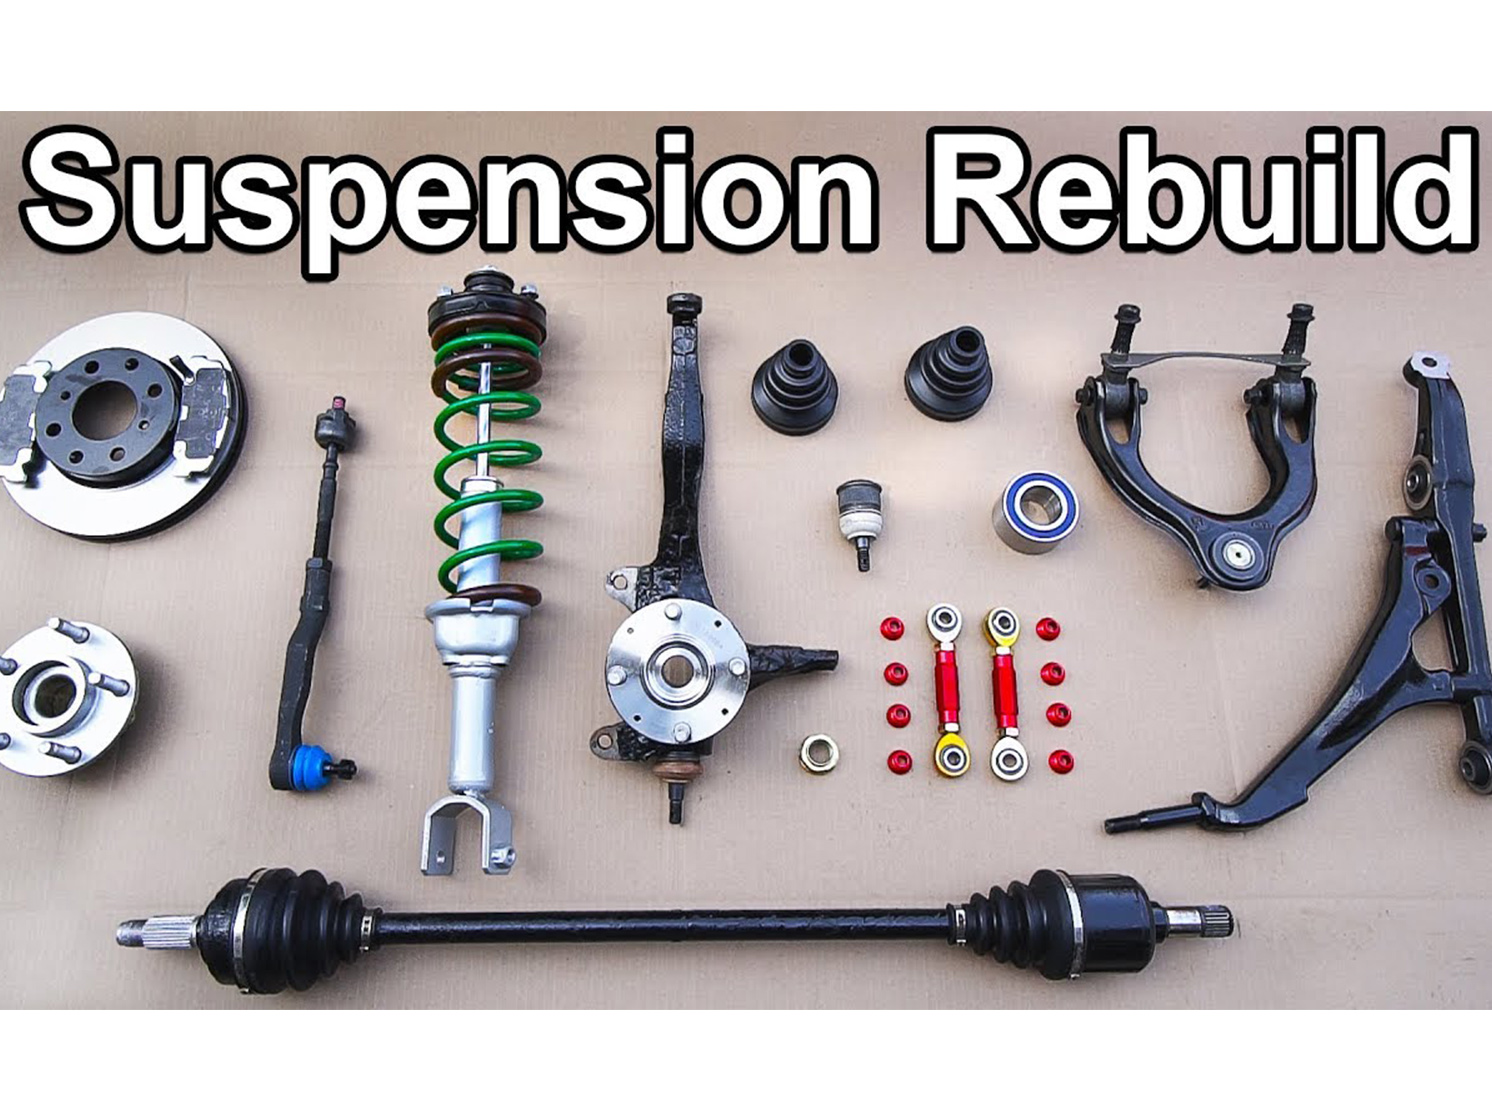 These tips will make front suspension assembly a breeze on your next project thumbnail